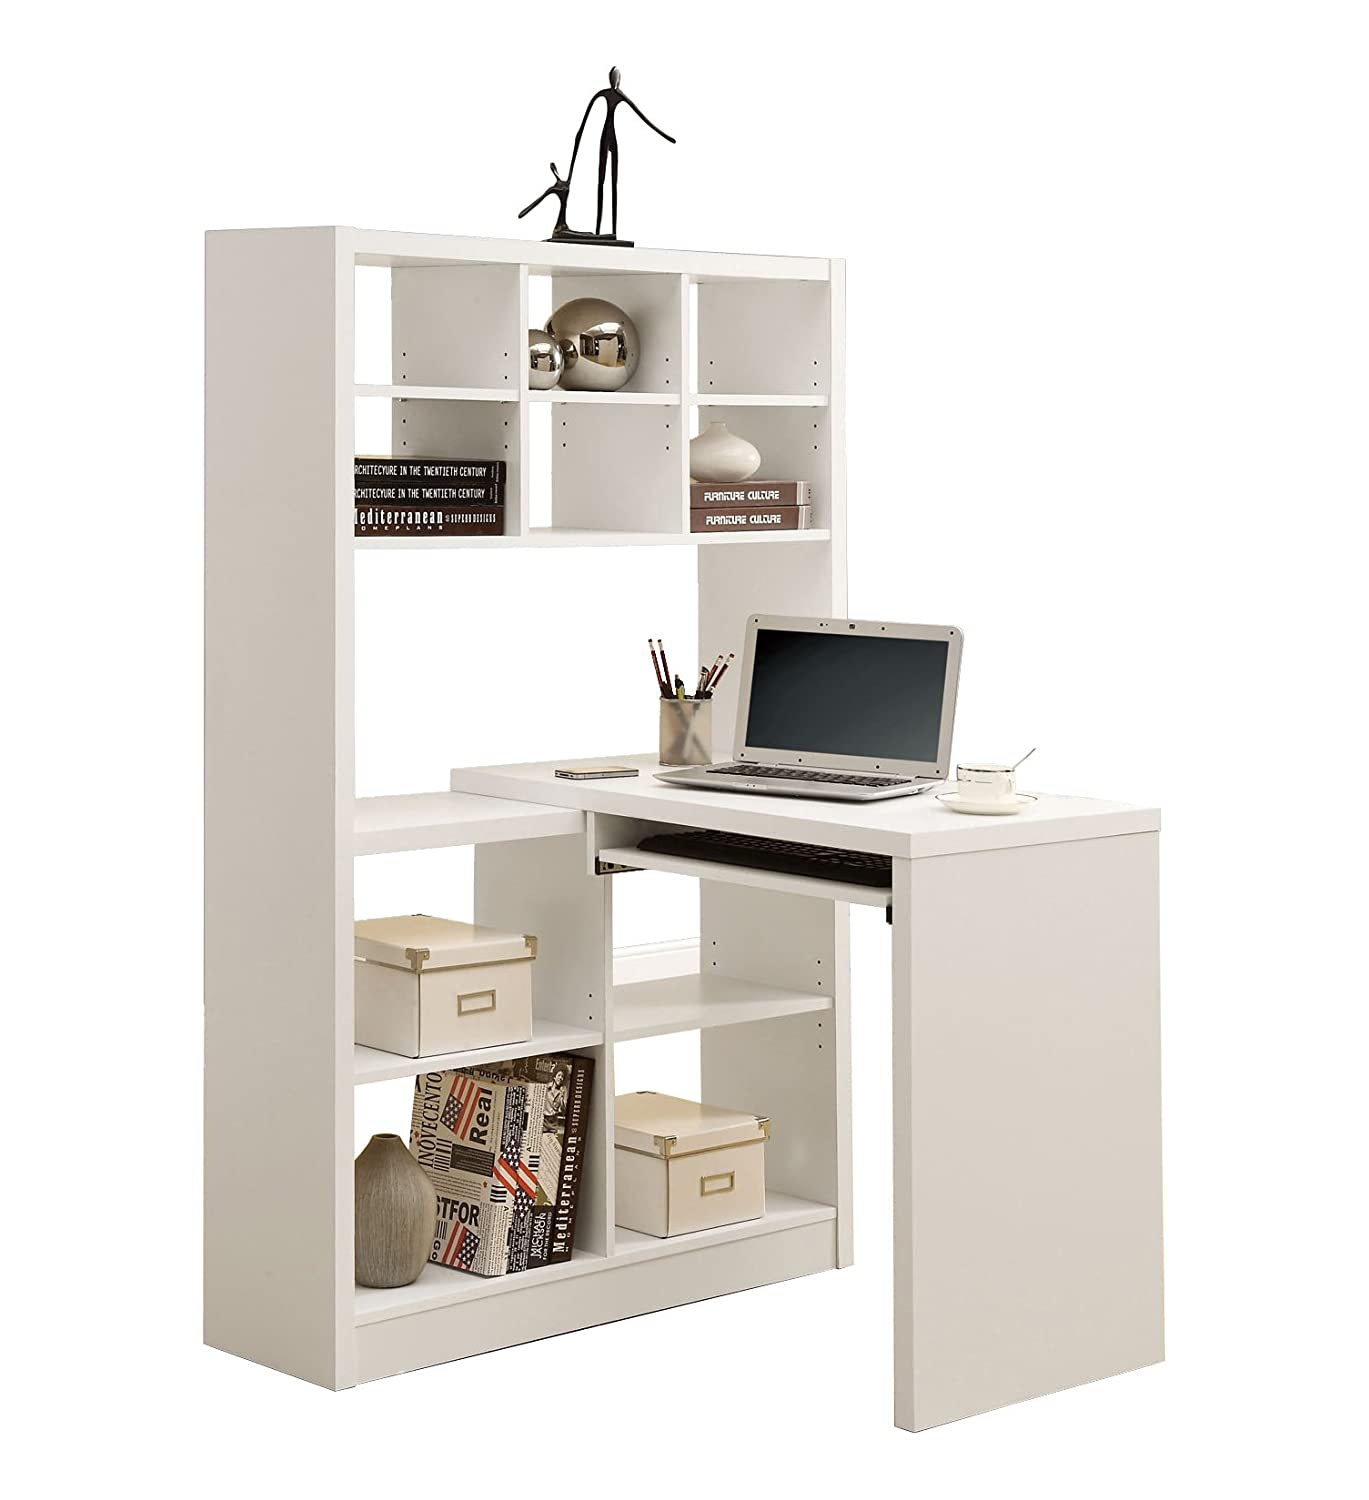 Monarch specialties white hollow core left right facing desk and shelf combo amazon co uk kitchen home